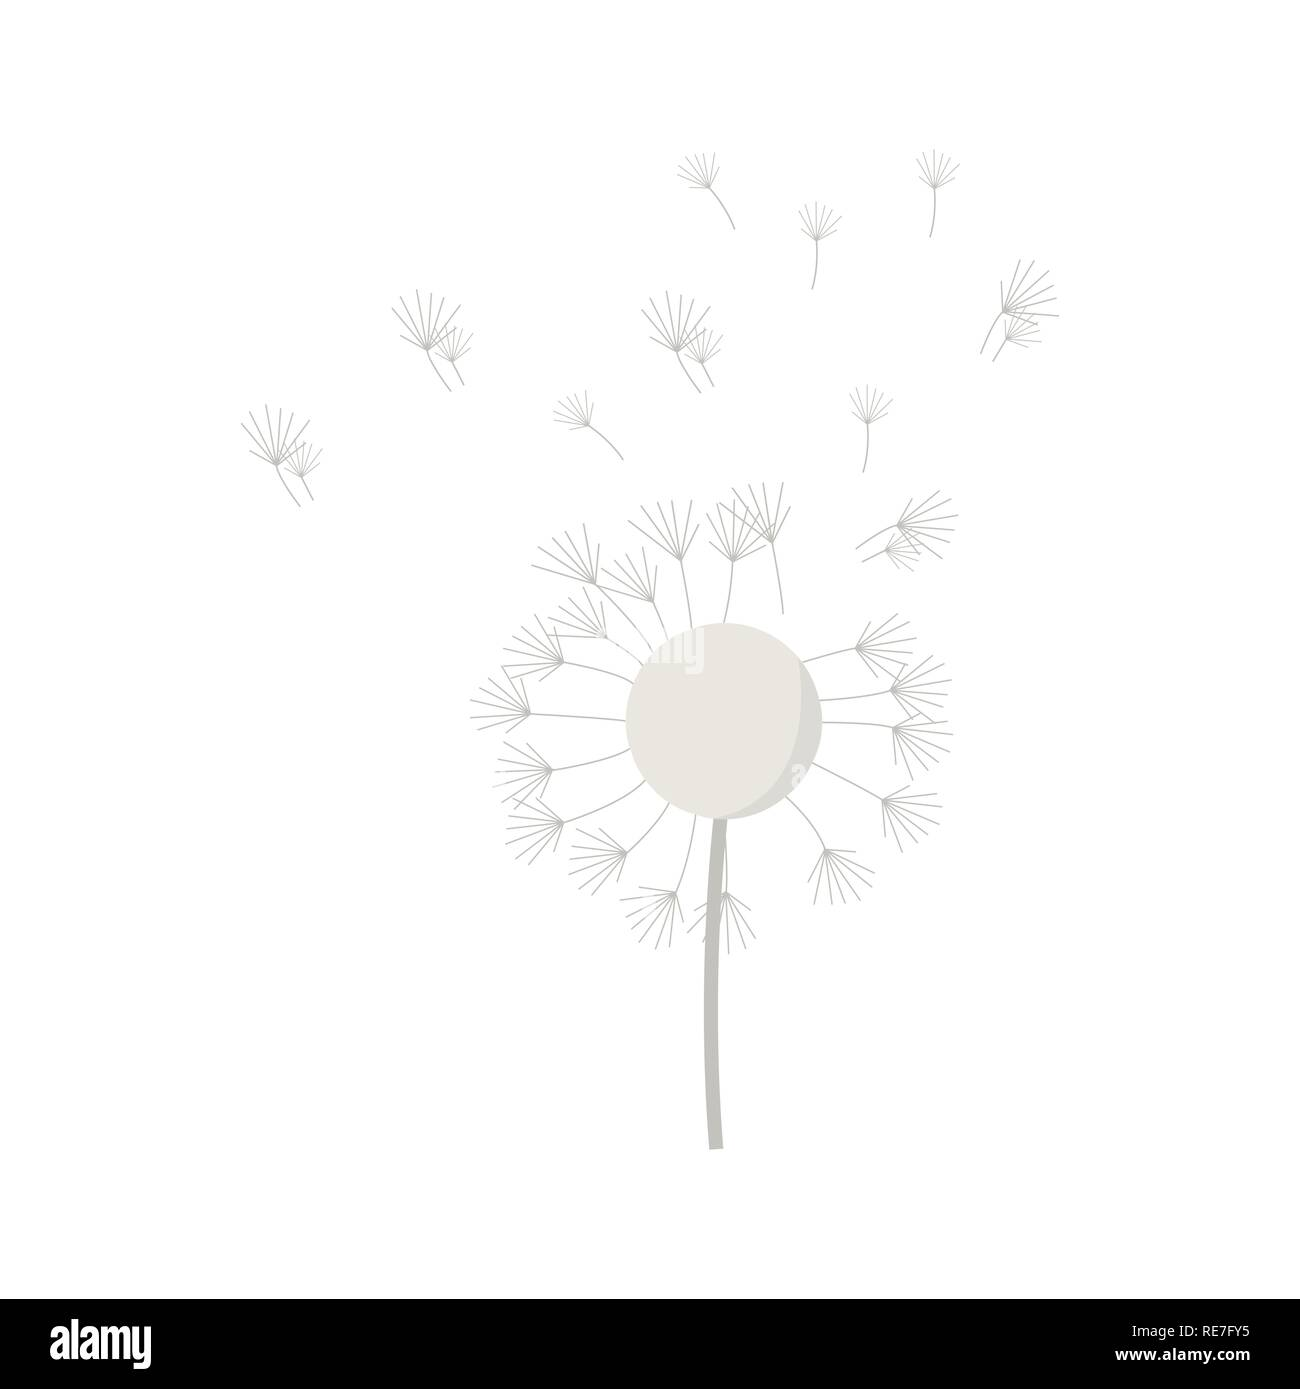 Dandelion On White Background For Graphic And Web Design Modern